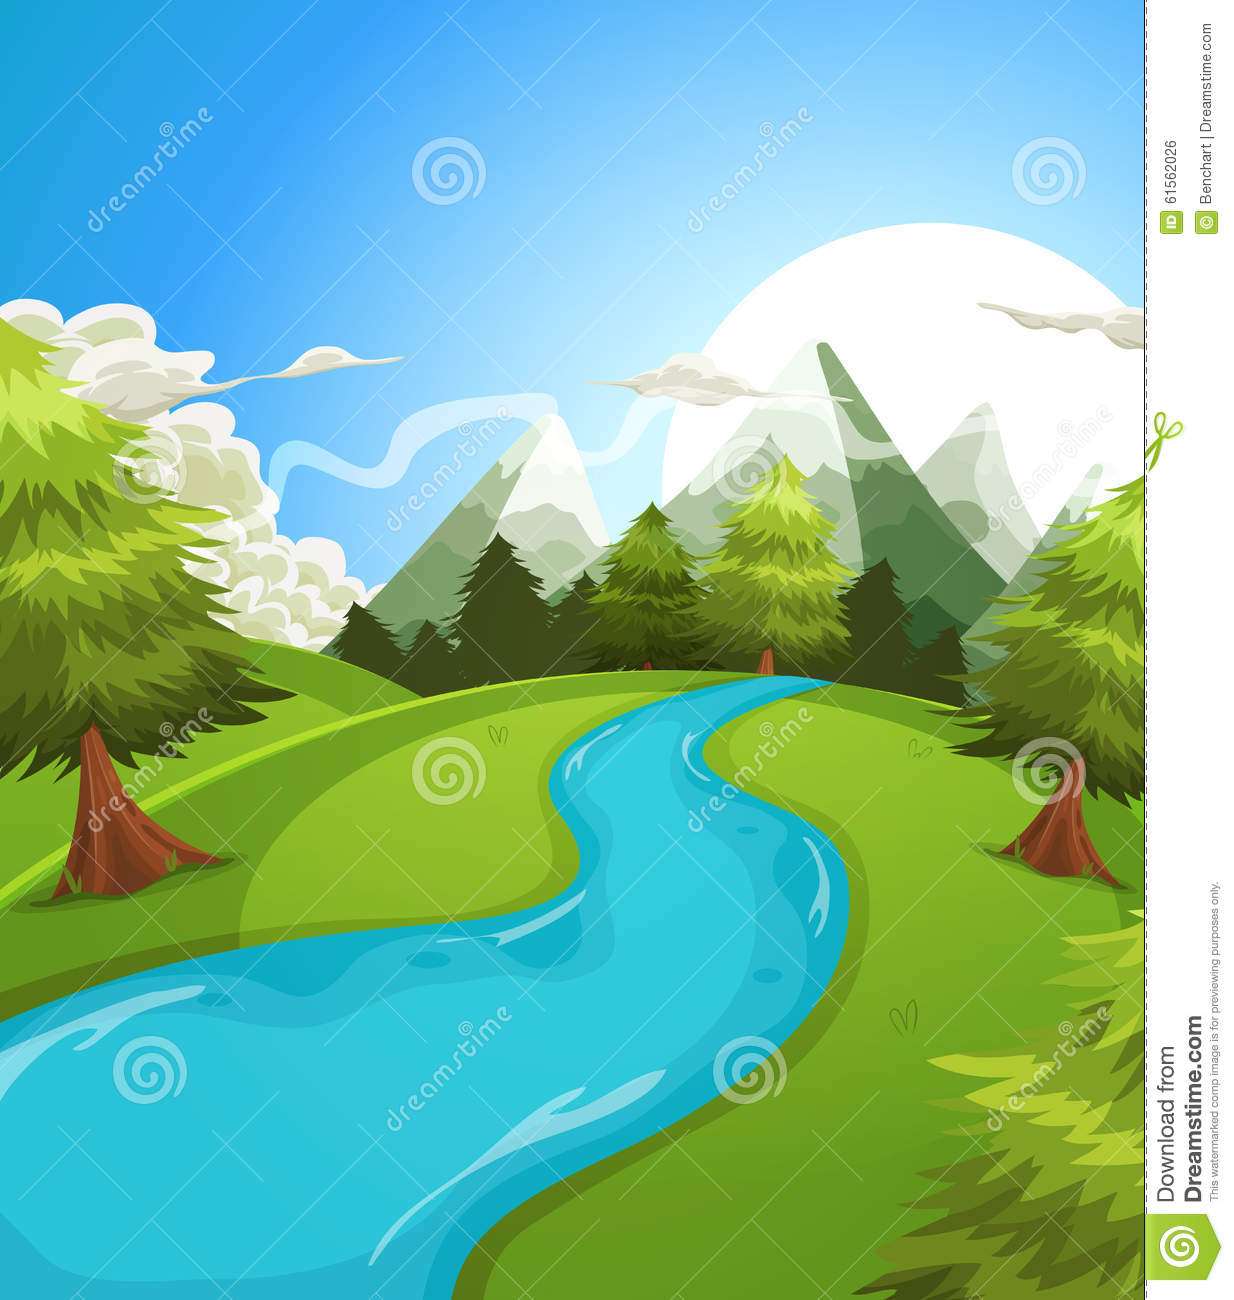 Illustration of a cartoon summer or spring high mountain landscape ...